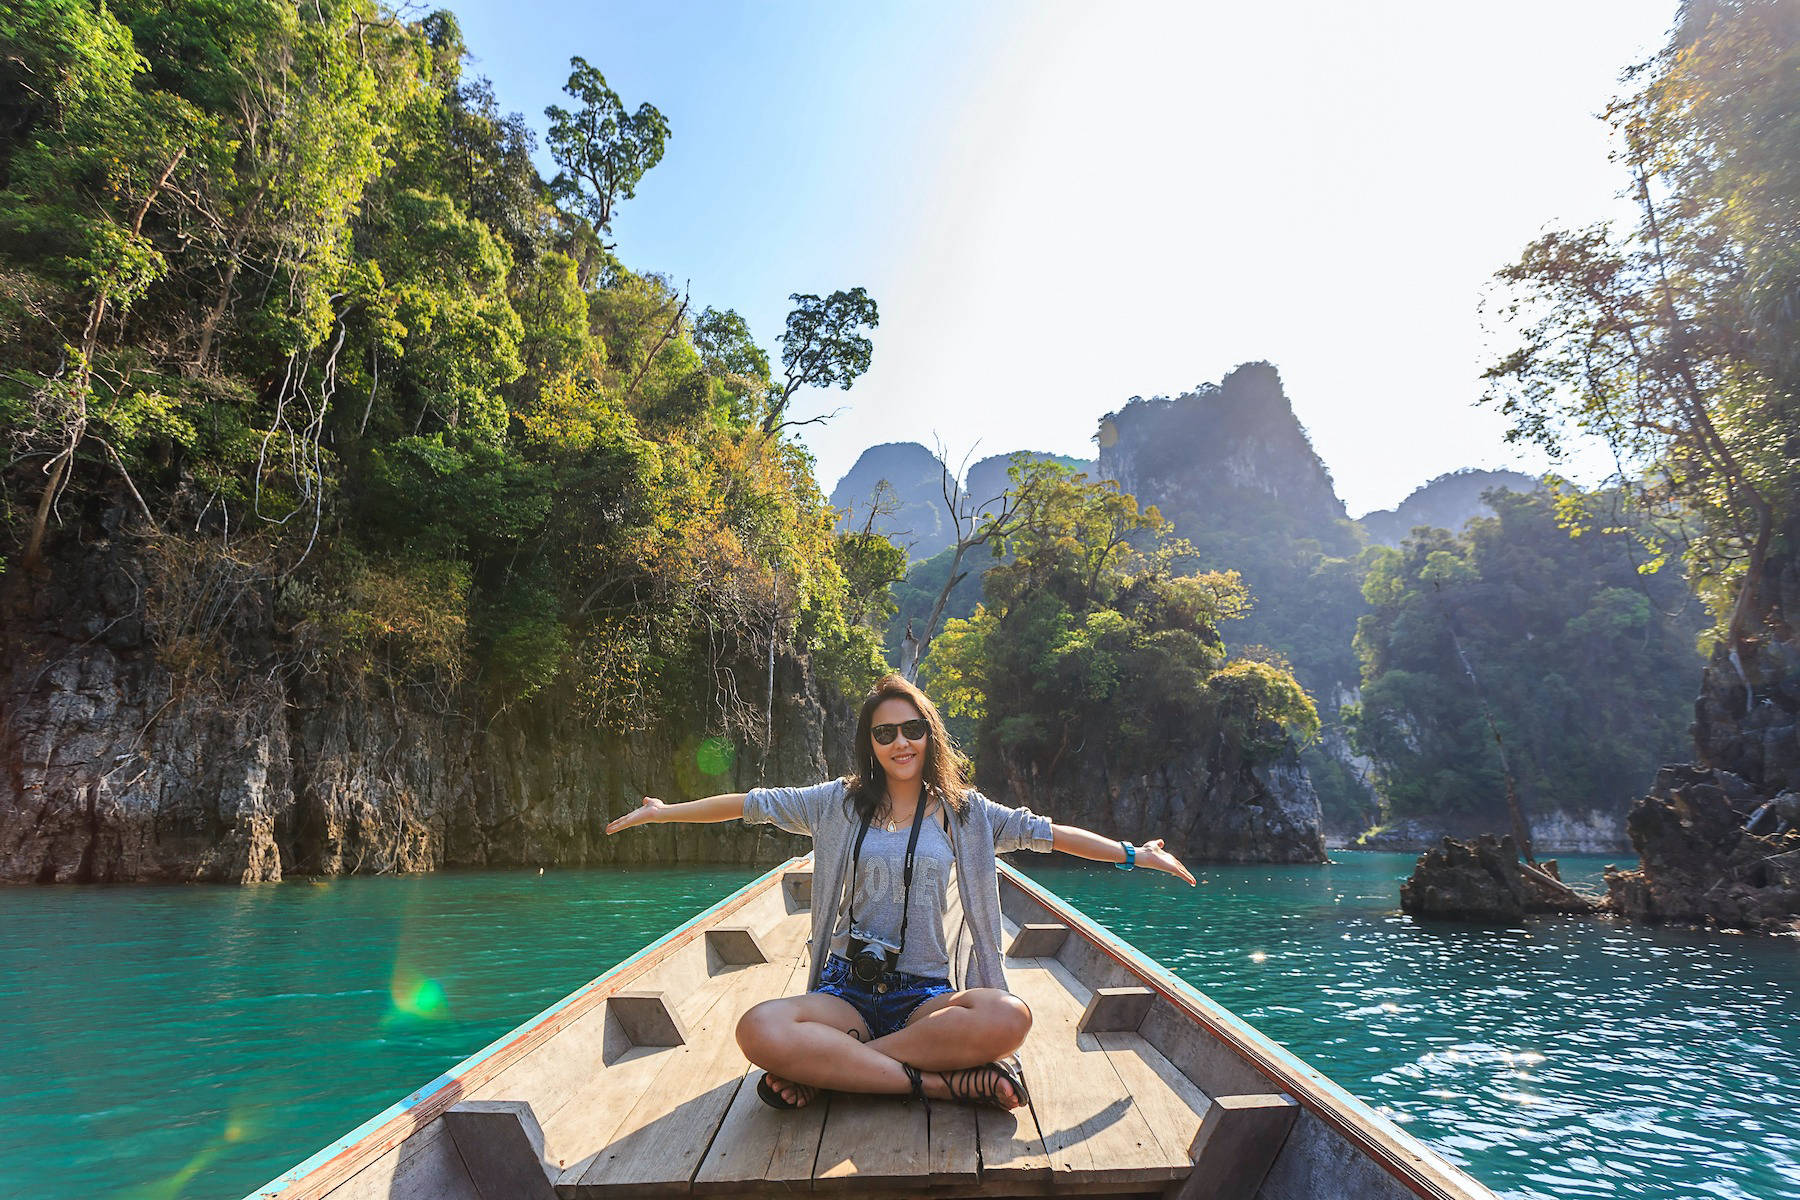 Woman on boat on river in Asia